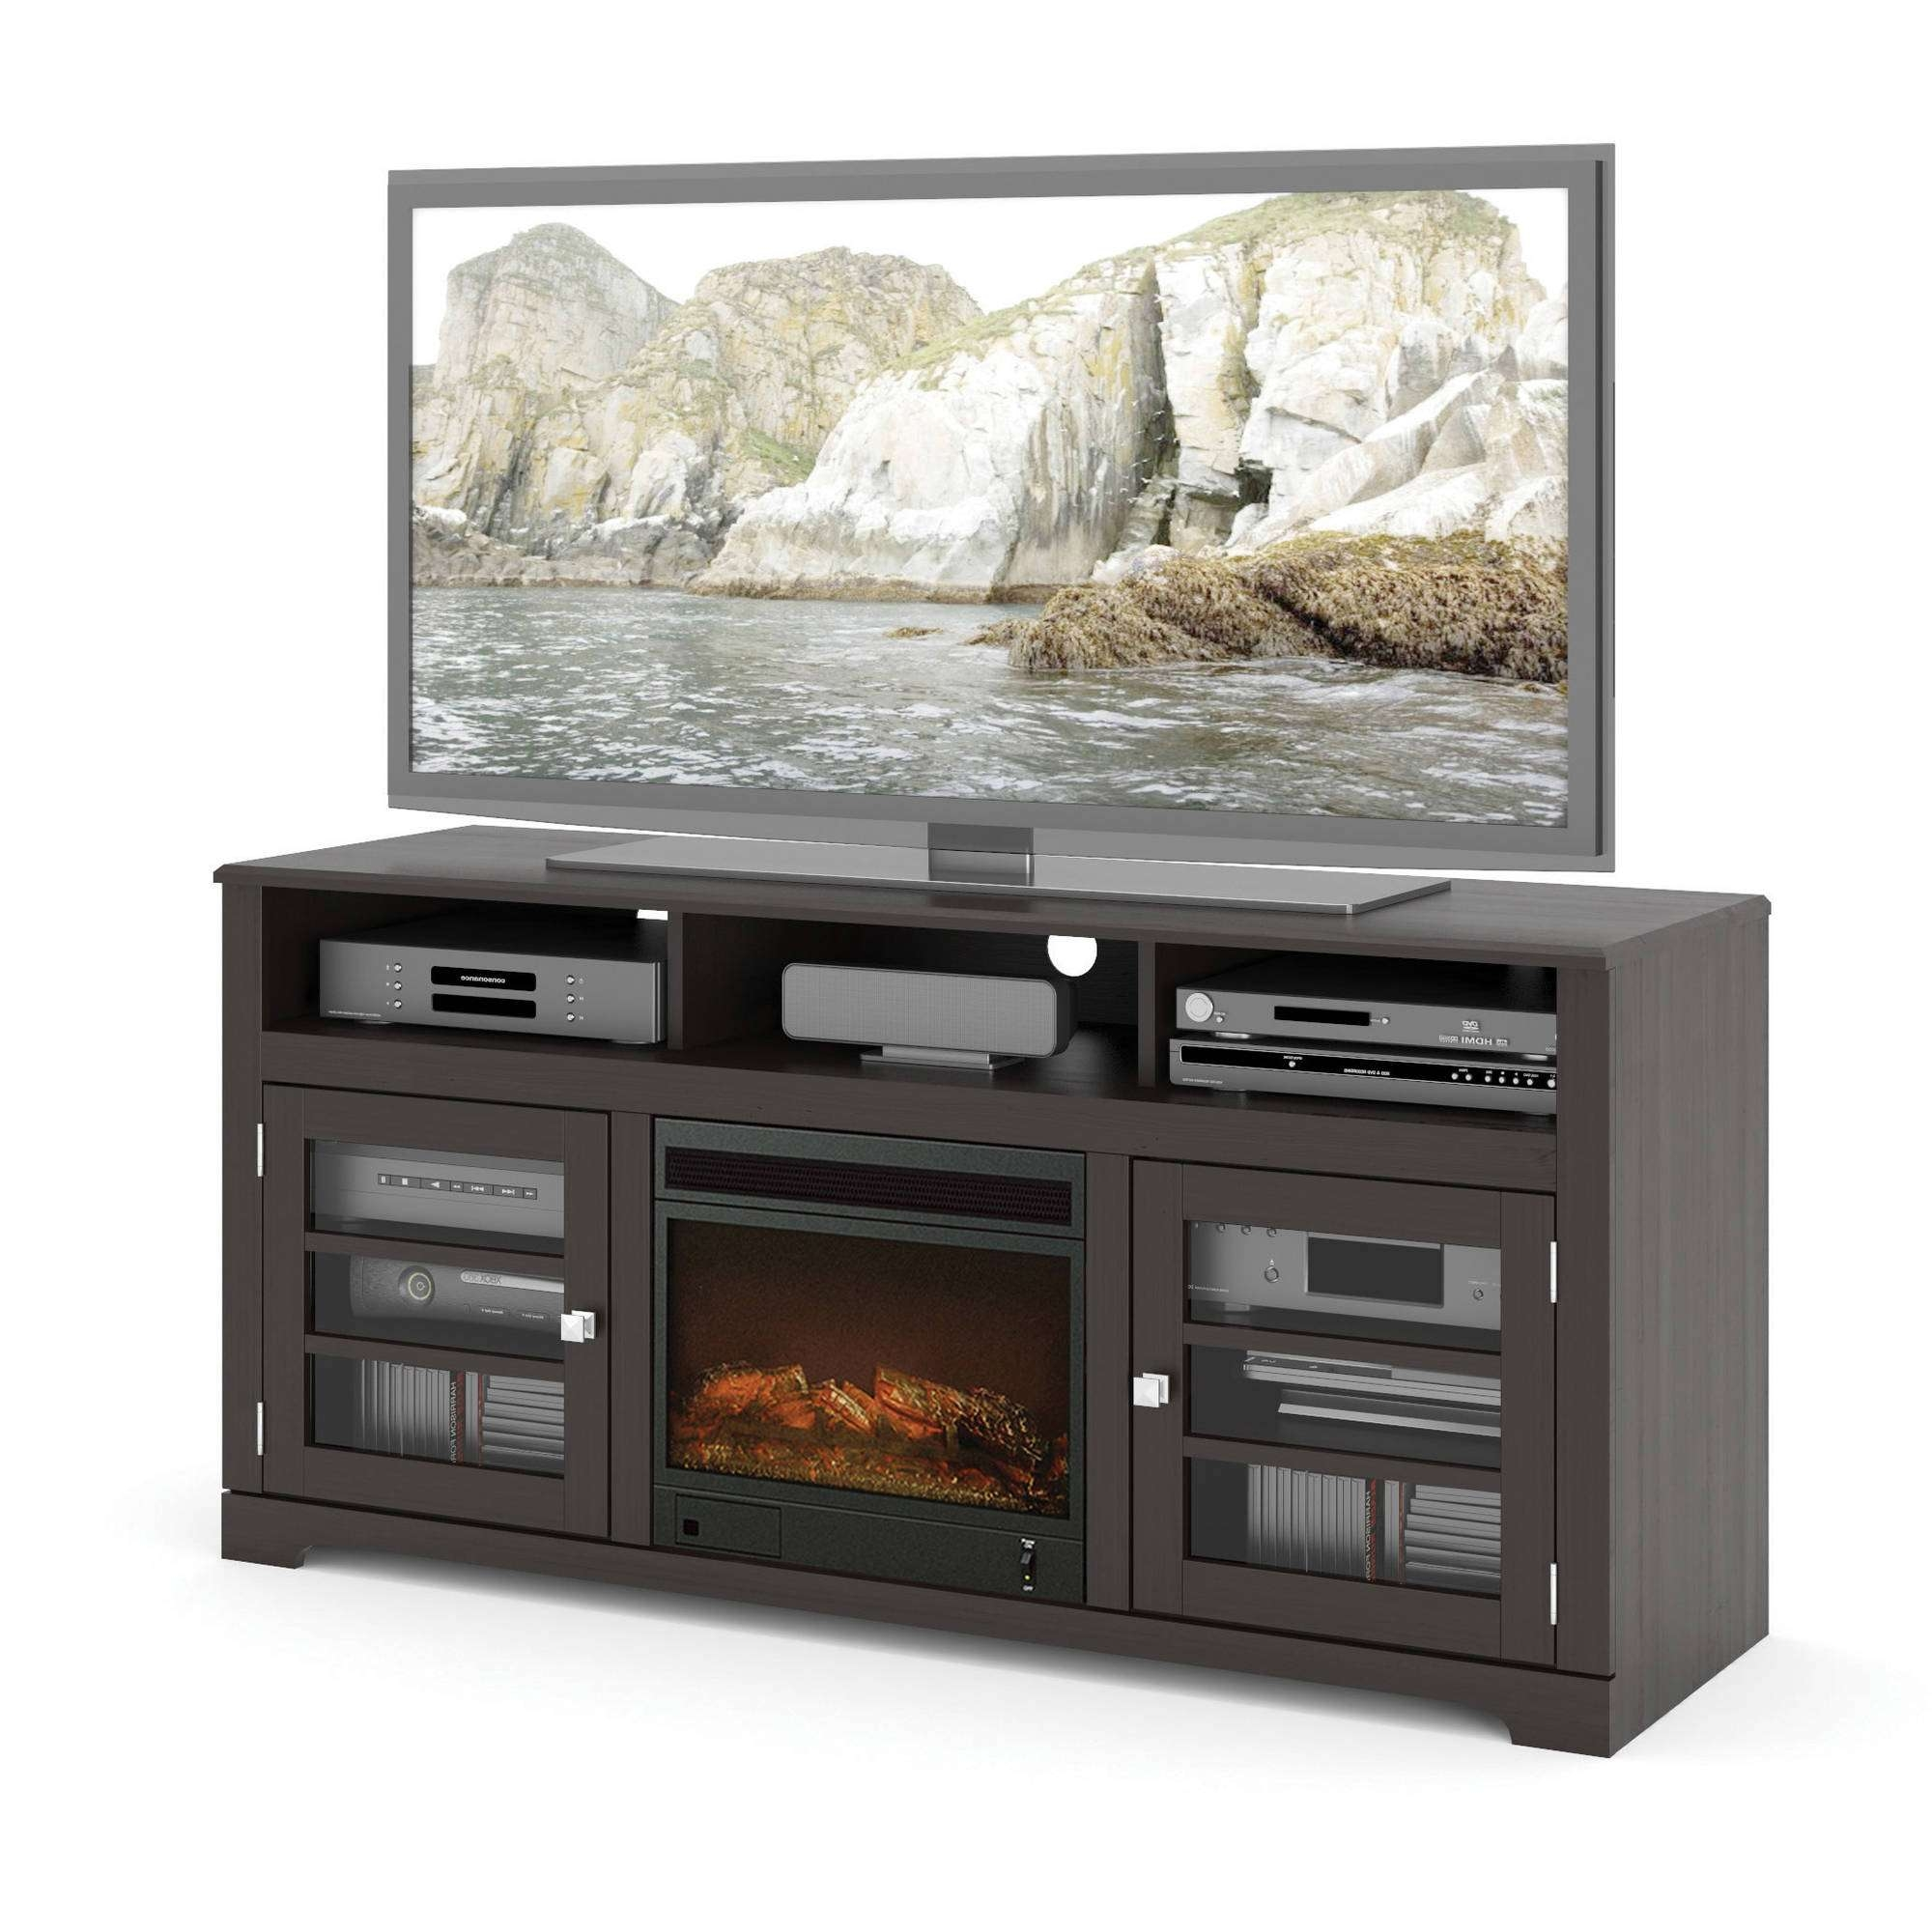 Fireplace Tv Stands – Walmart With Regard To Rustic 60 Inch Tv Stands (View 3 of 15)